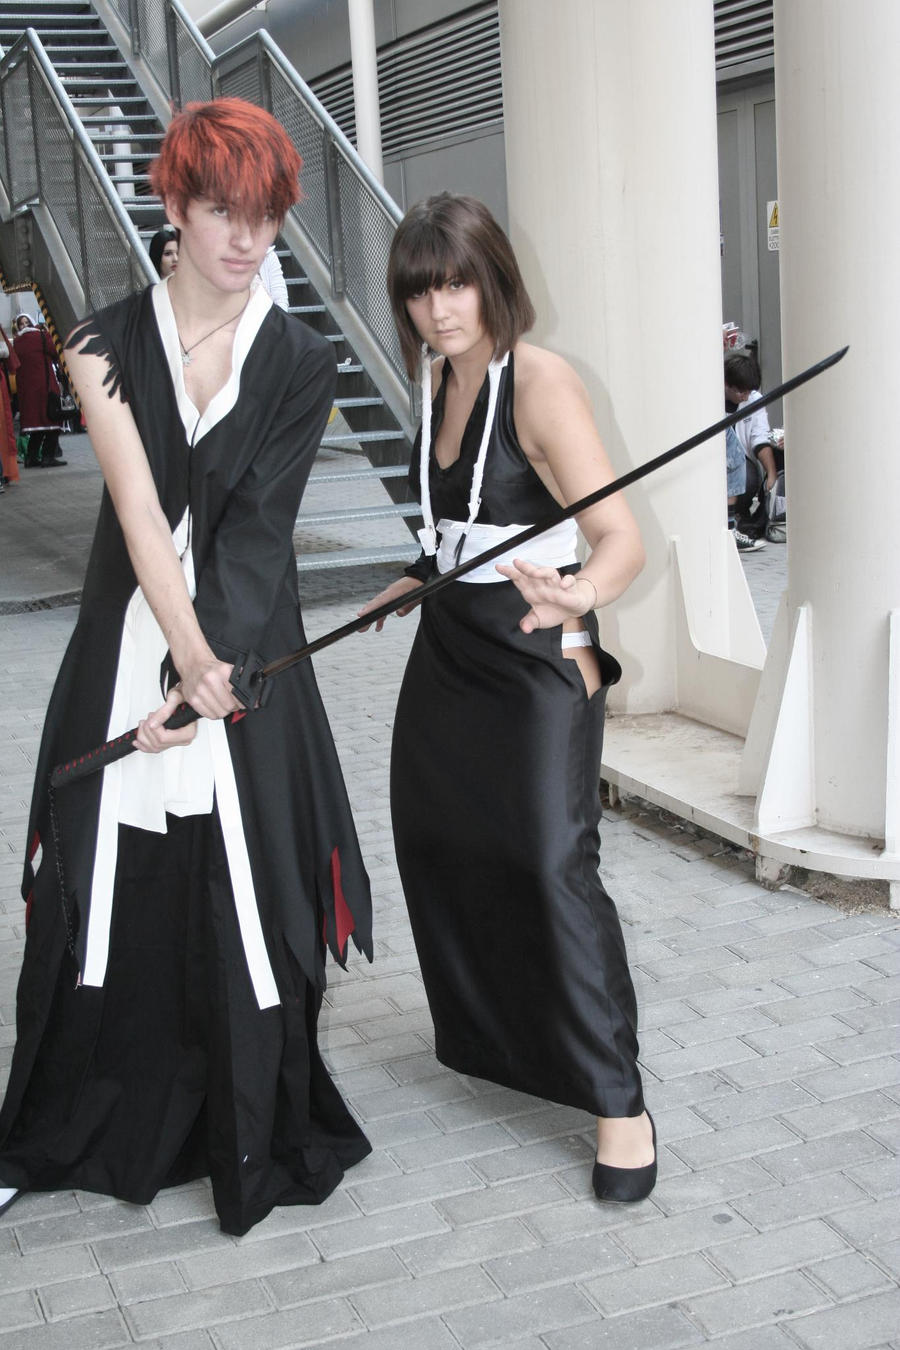 Come on-Ichigo and Soi Fon by equiclubecastello